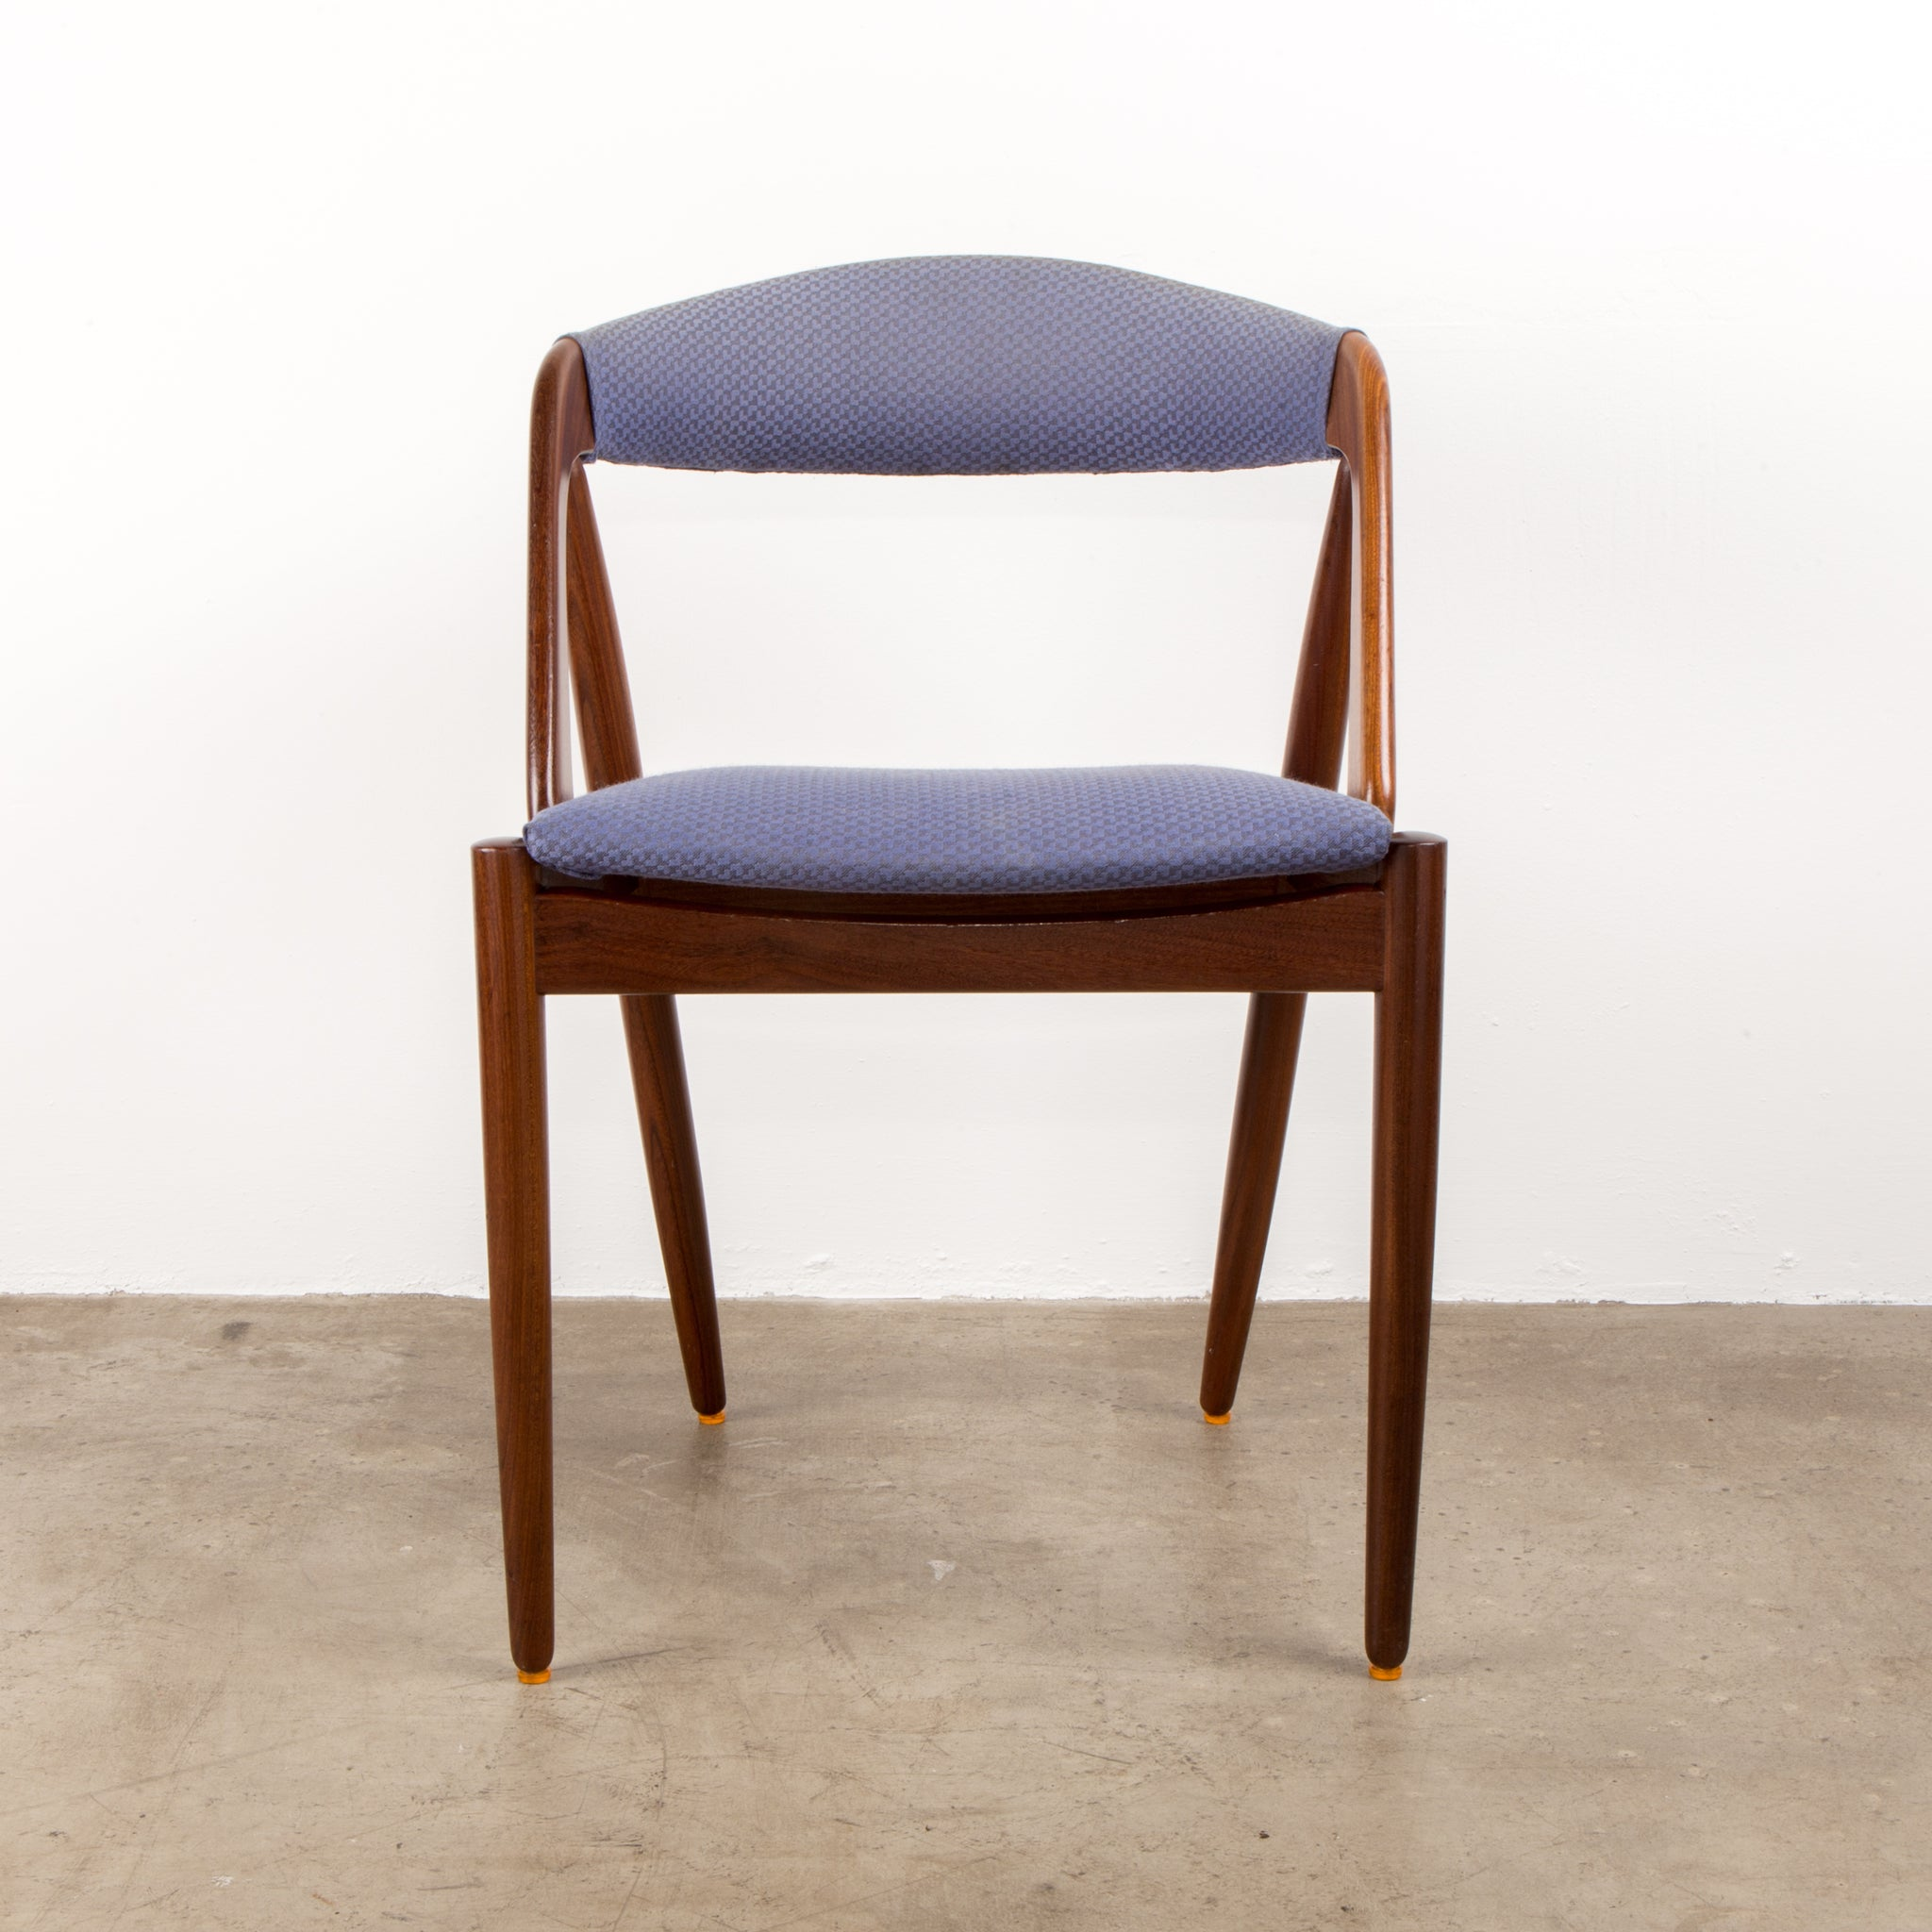 1960s Danish Kai Kristiansen Model 31 Teak Dining Chair